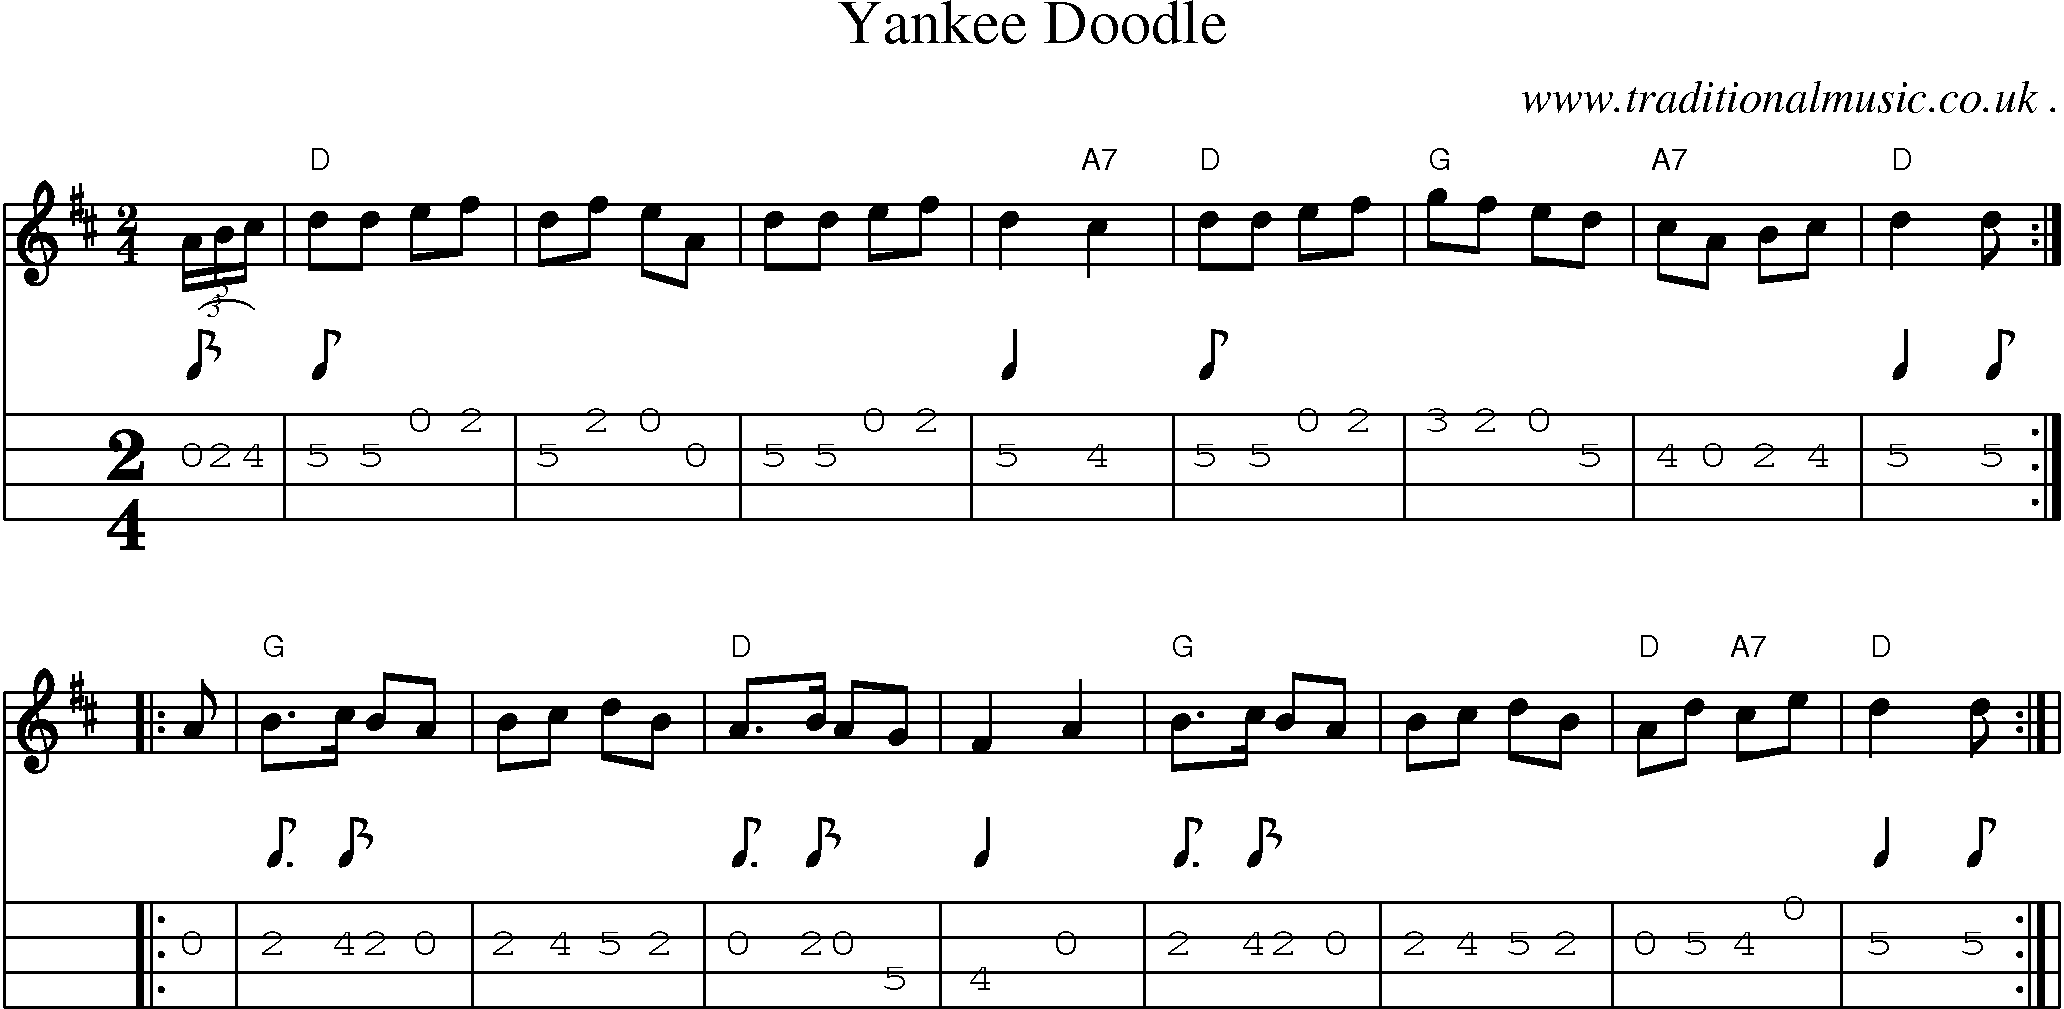 American Old-time music, Scores and Tabs for Mandolin - Yankee Doodle